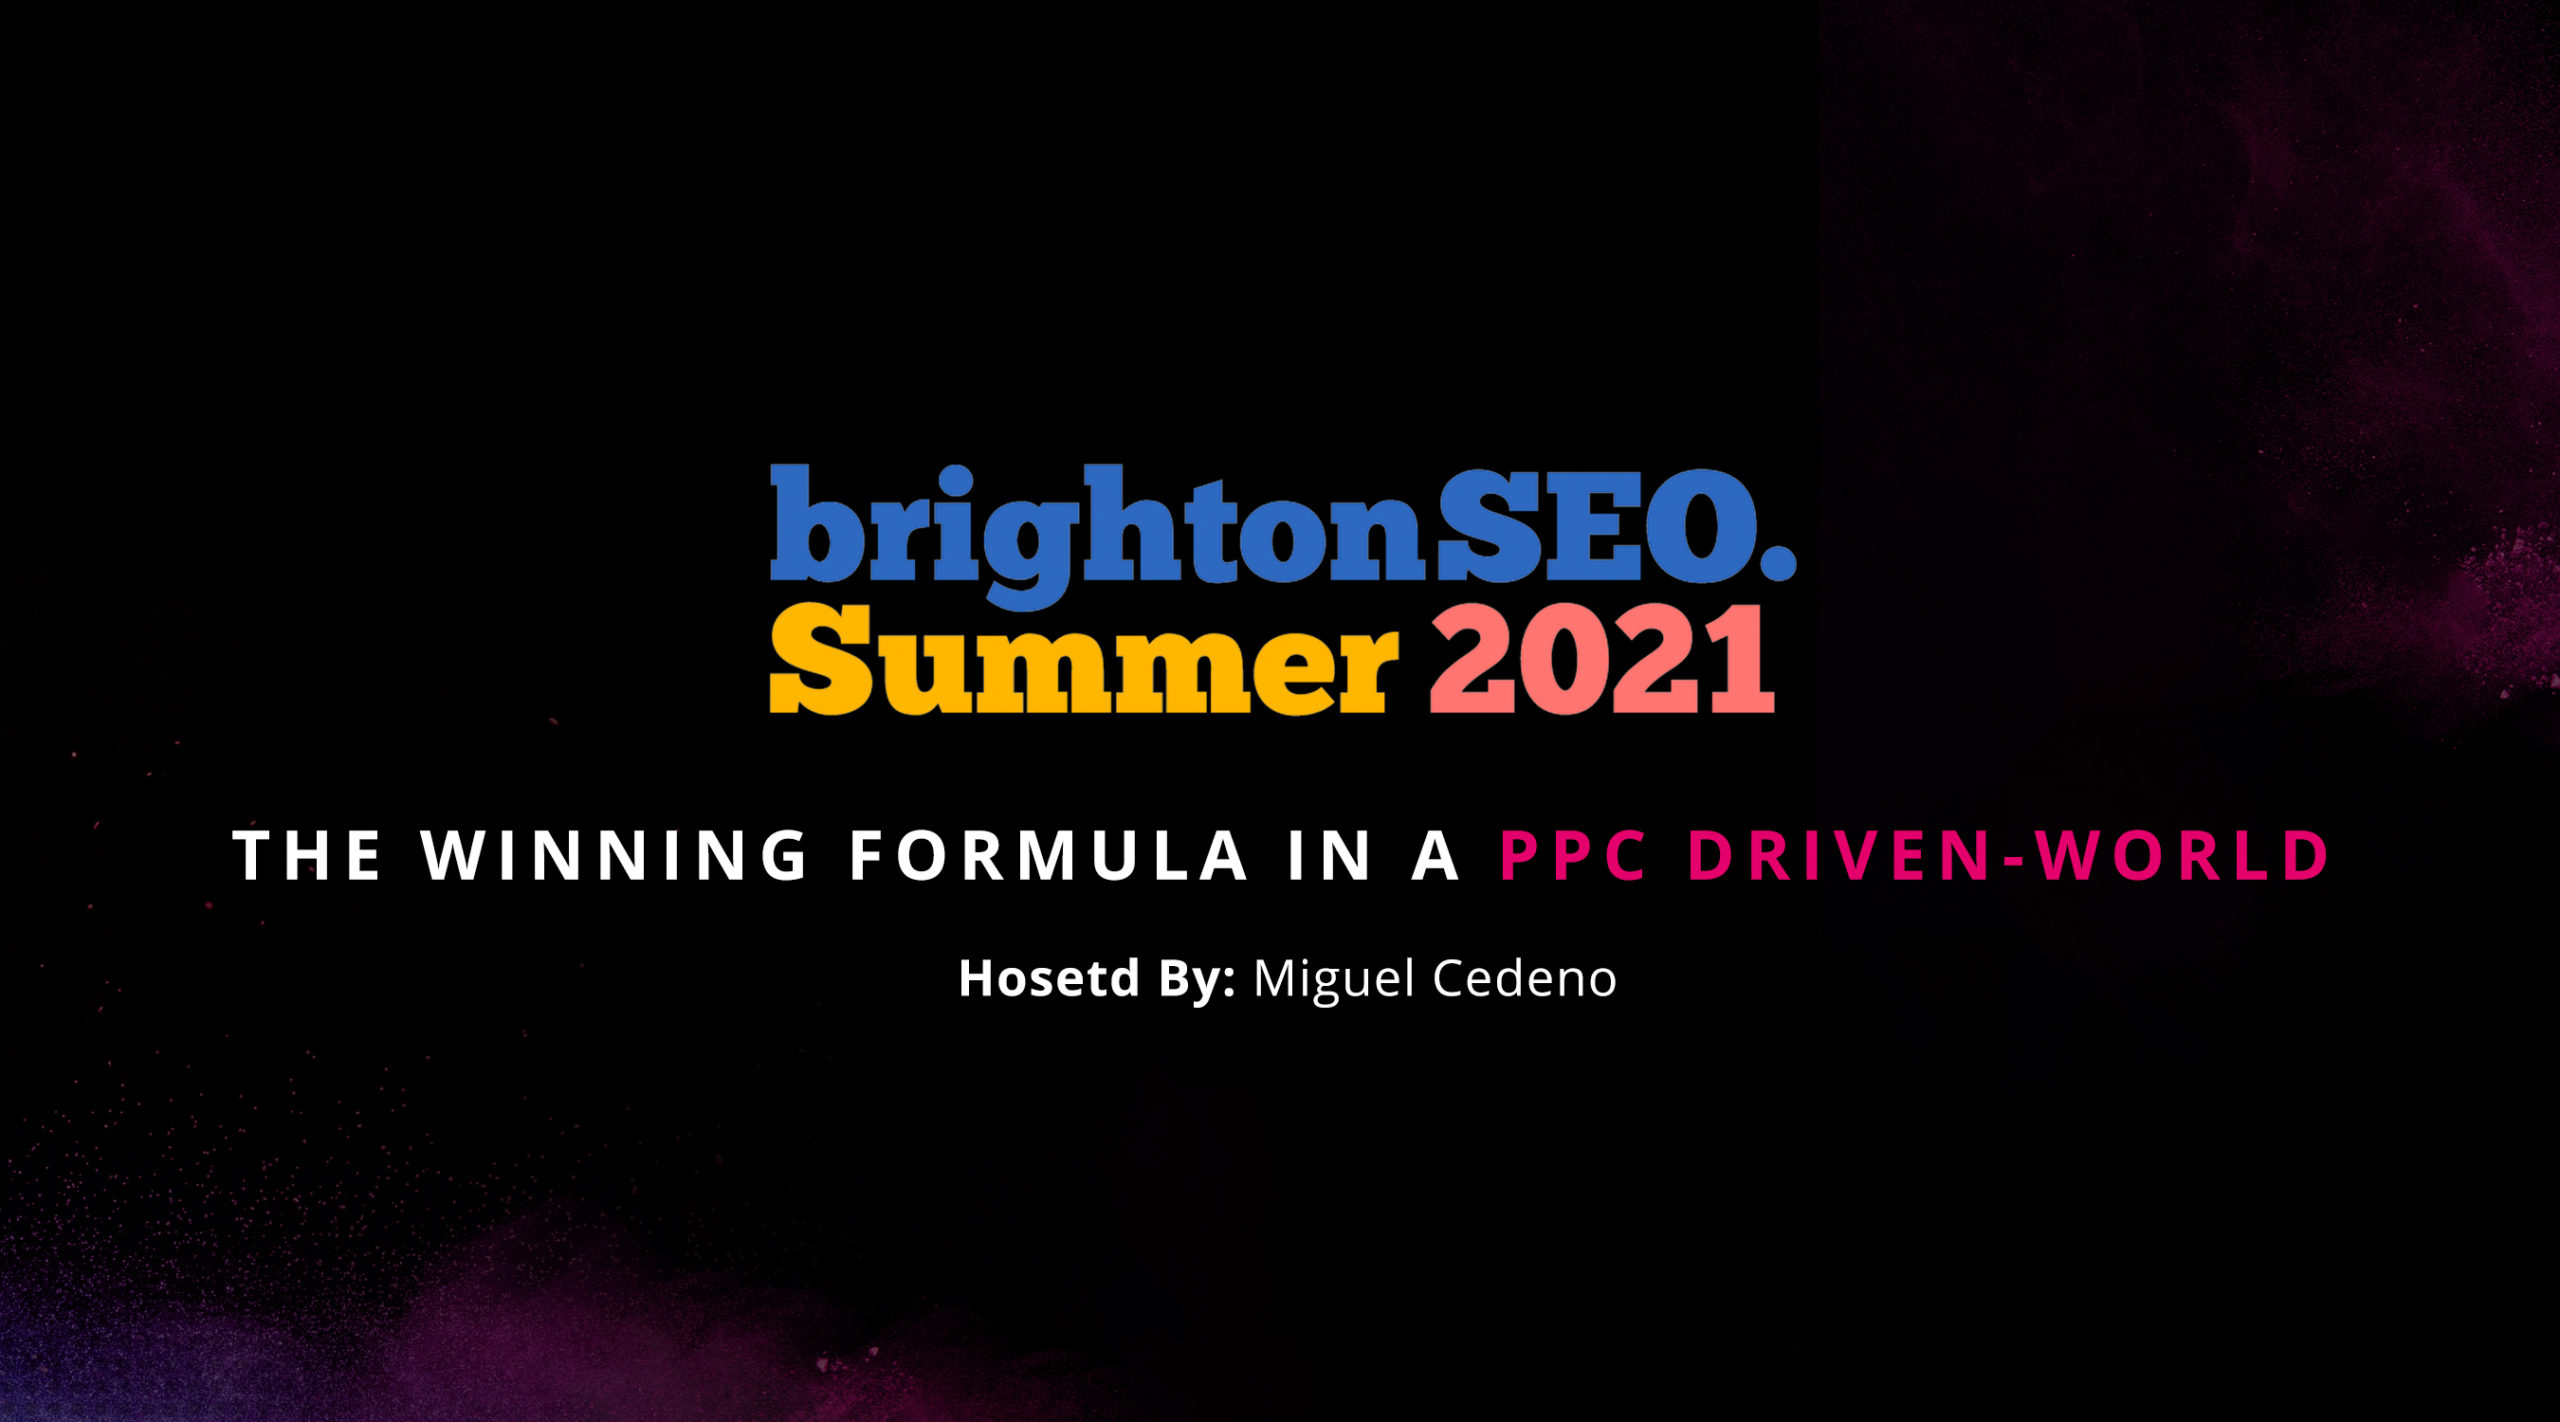 Brighton SEO Summer 2021: The Winning Formula In A PPC Driven-World - Hosted By Miguel Cedeno